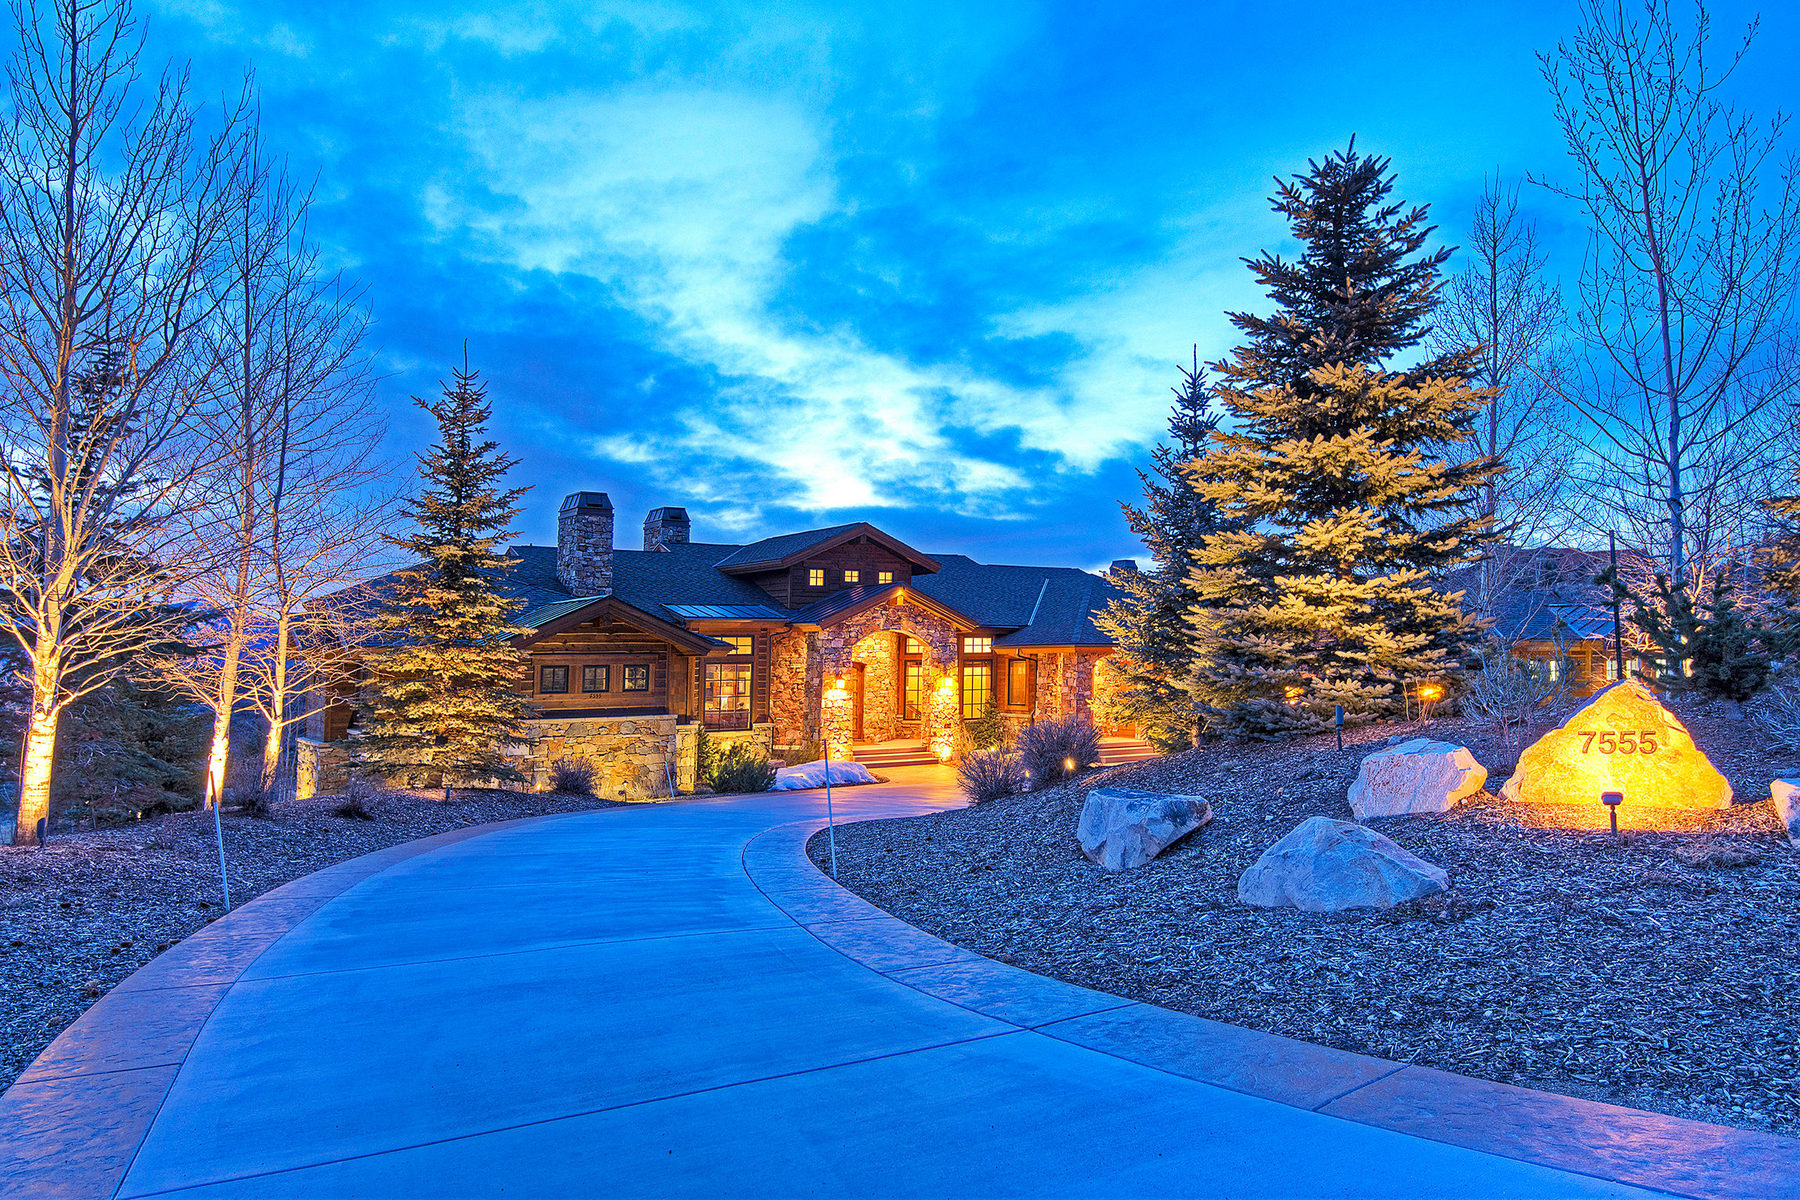 一戸建て のために 売買 アット Stunning Promontory Mountain Home With Golf & Ski Resort Views 7555 N. Ranch Club Trail Lot 23 Park City, ユタ 84098 アメリカ合衆国